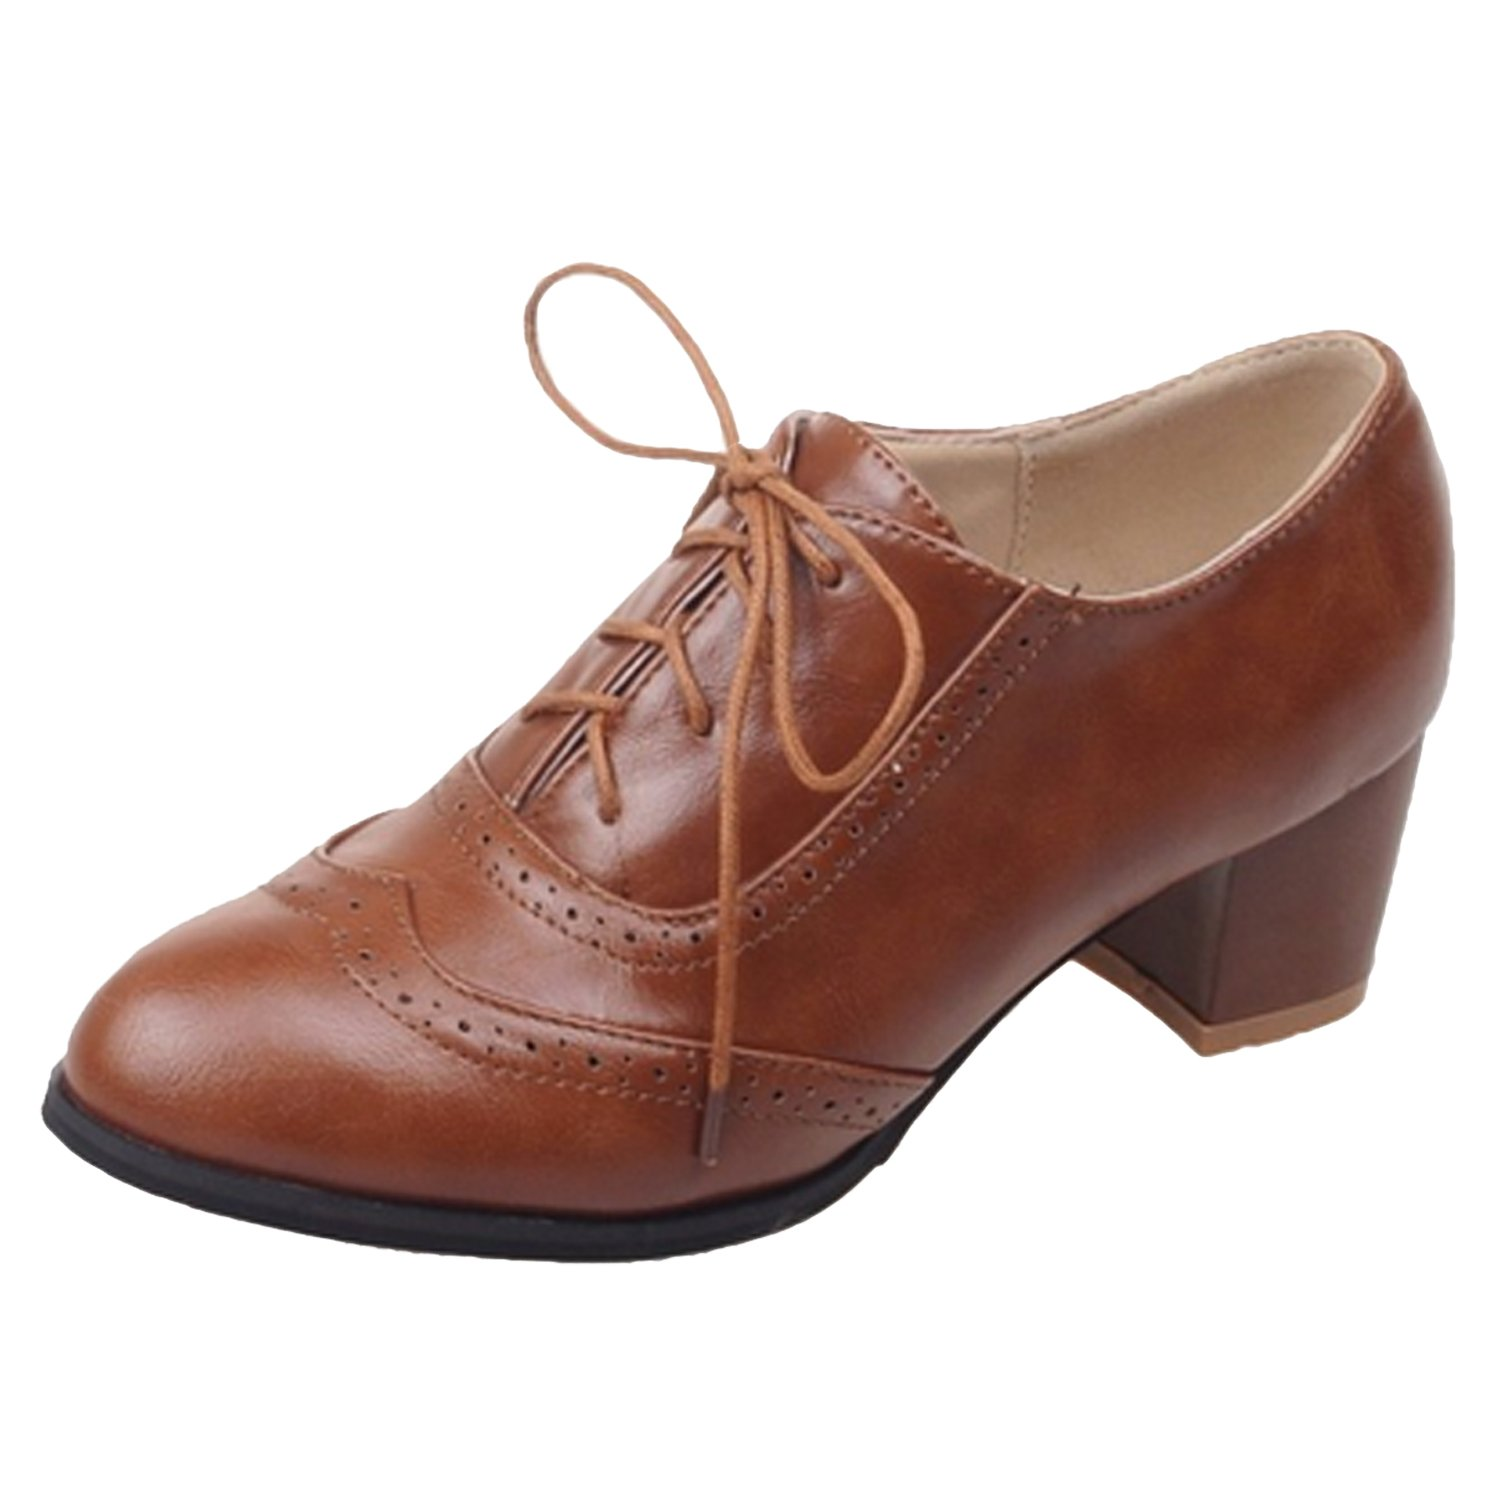 1950s Style Shoes | Heels, Flats, Saddle Shoes Womens Heel Oxfords £22.99 AT vintagedancer.com